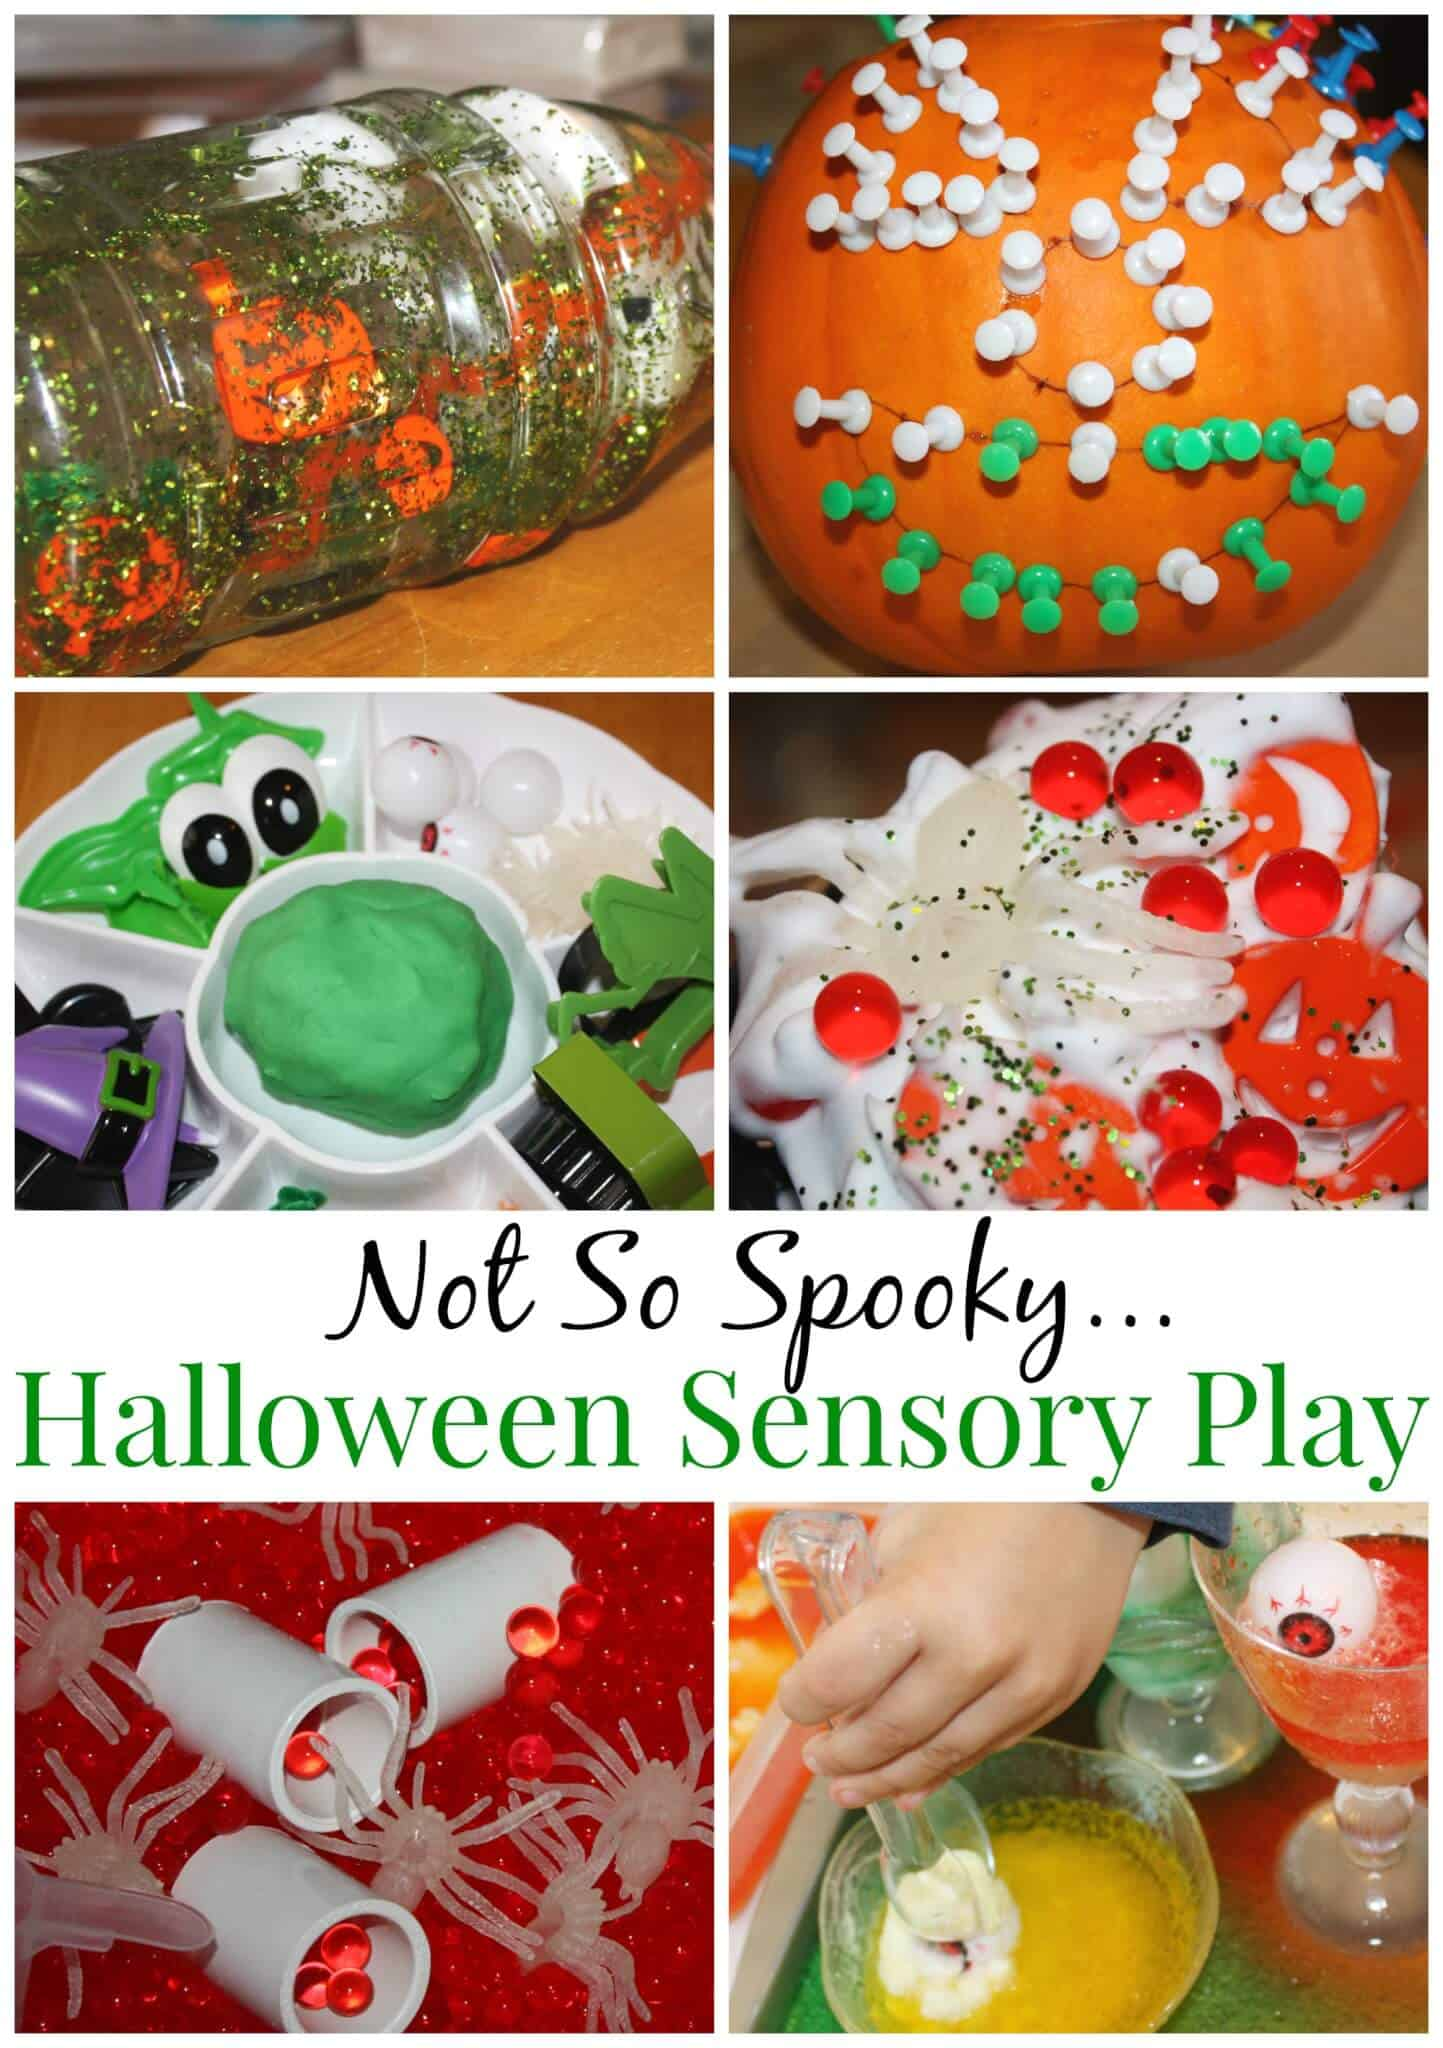 Halloween Sensory Play Activities And Ideas For Young Kids